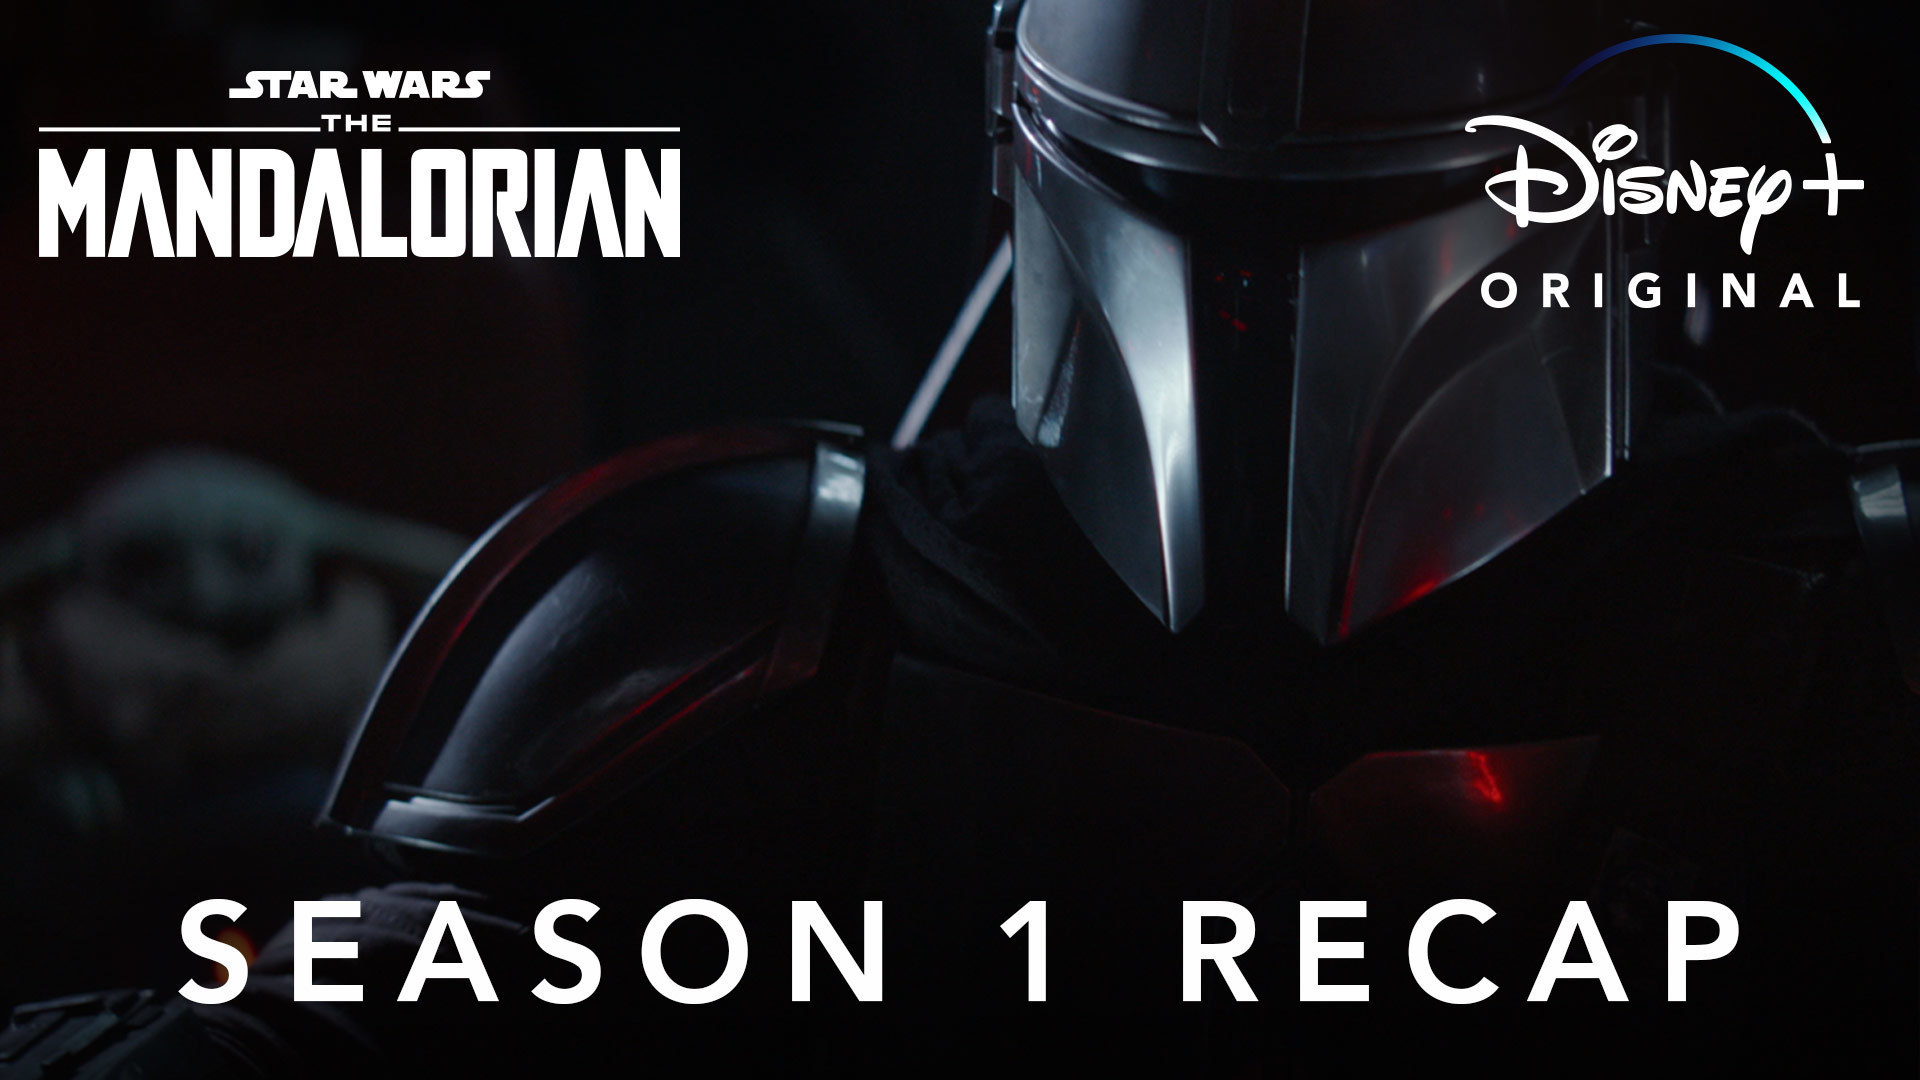 Season 1 Recap - The Mandalorian